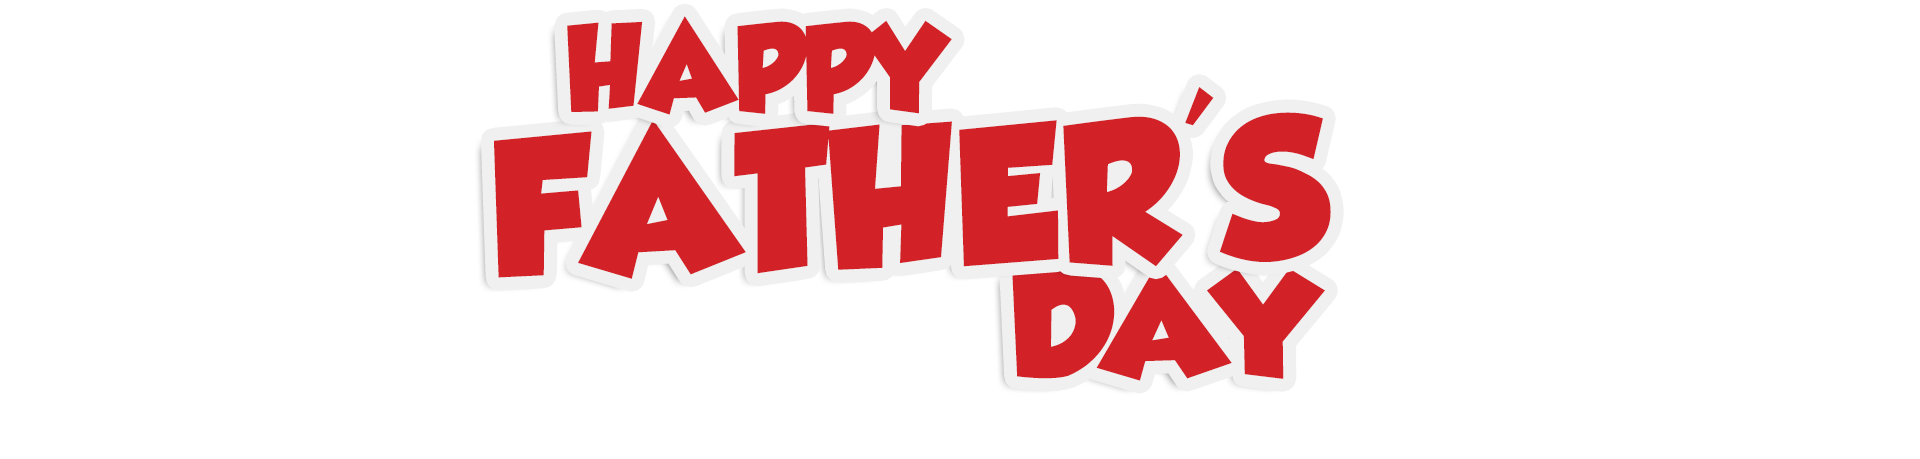 Happy Fathers Day Banner Png image #42544